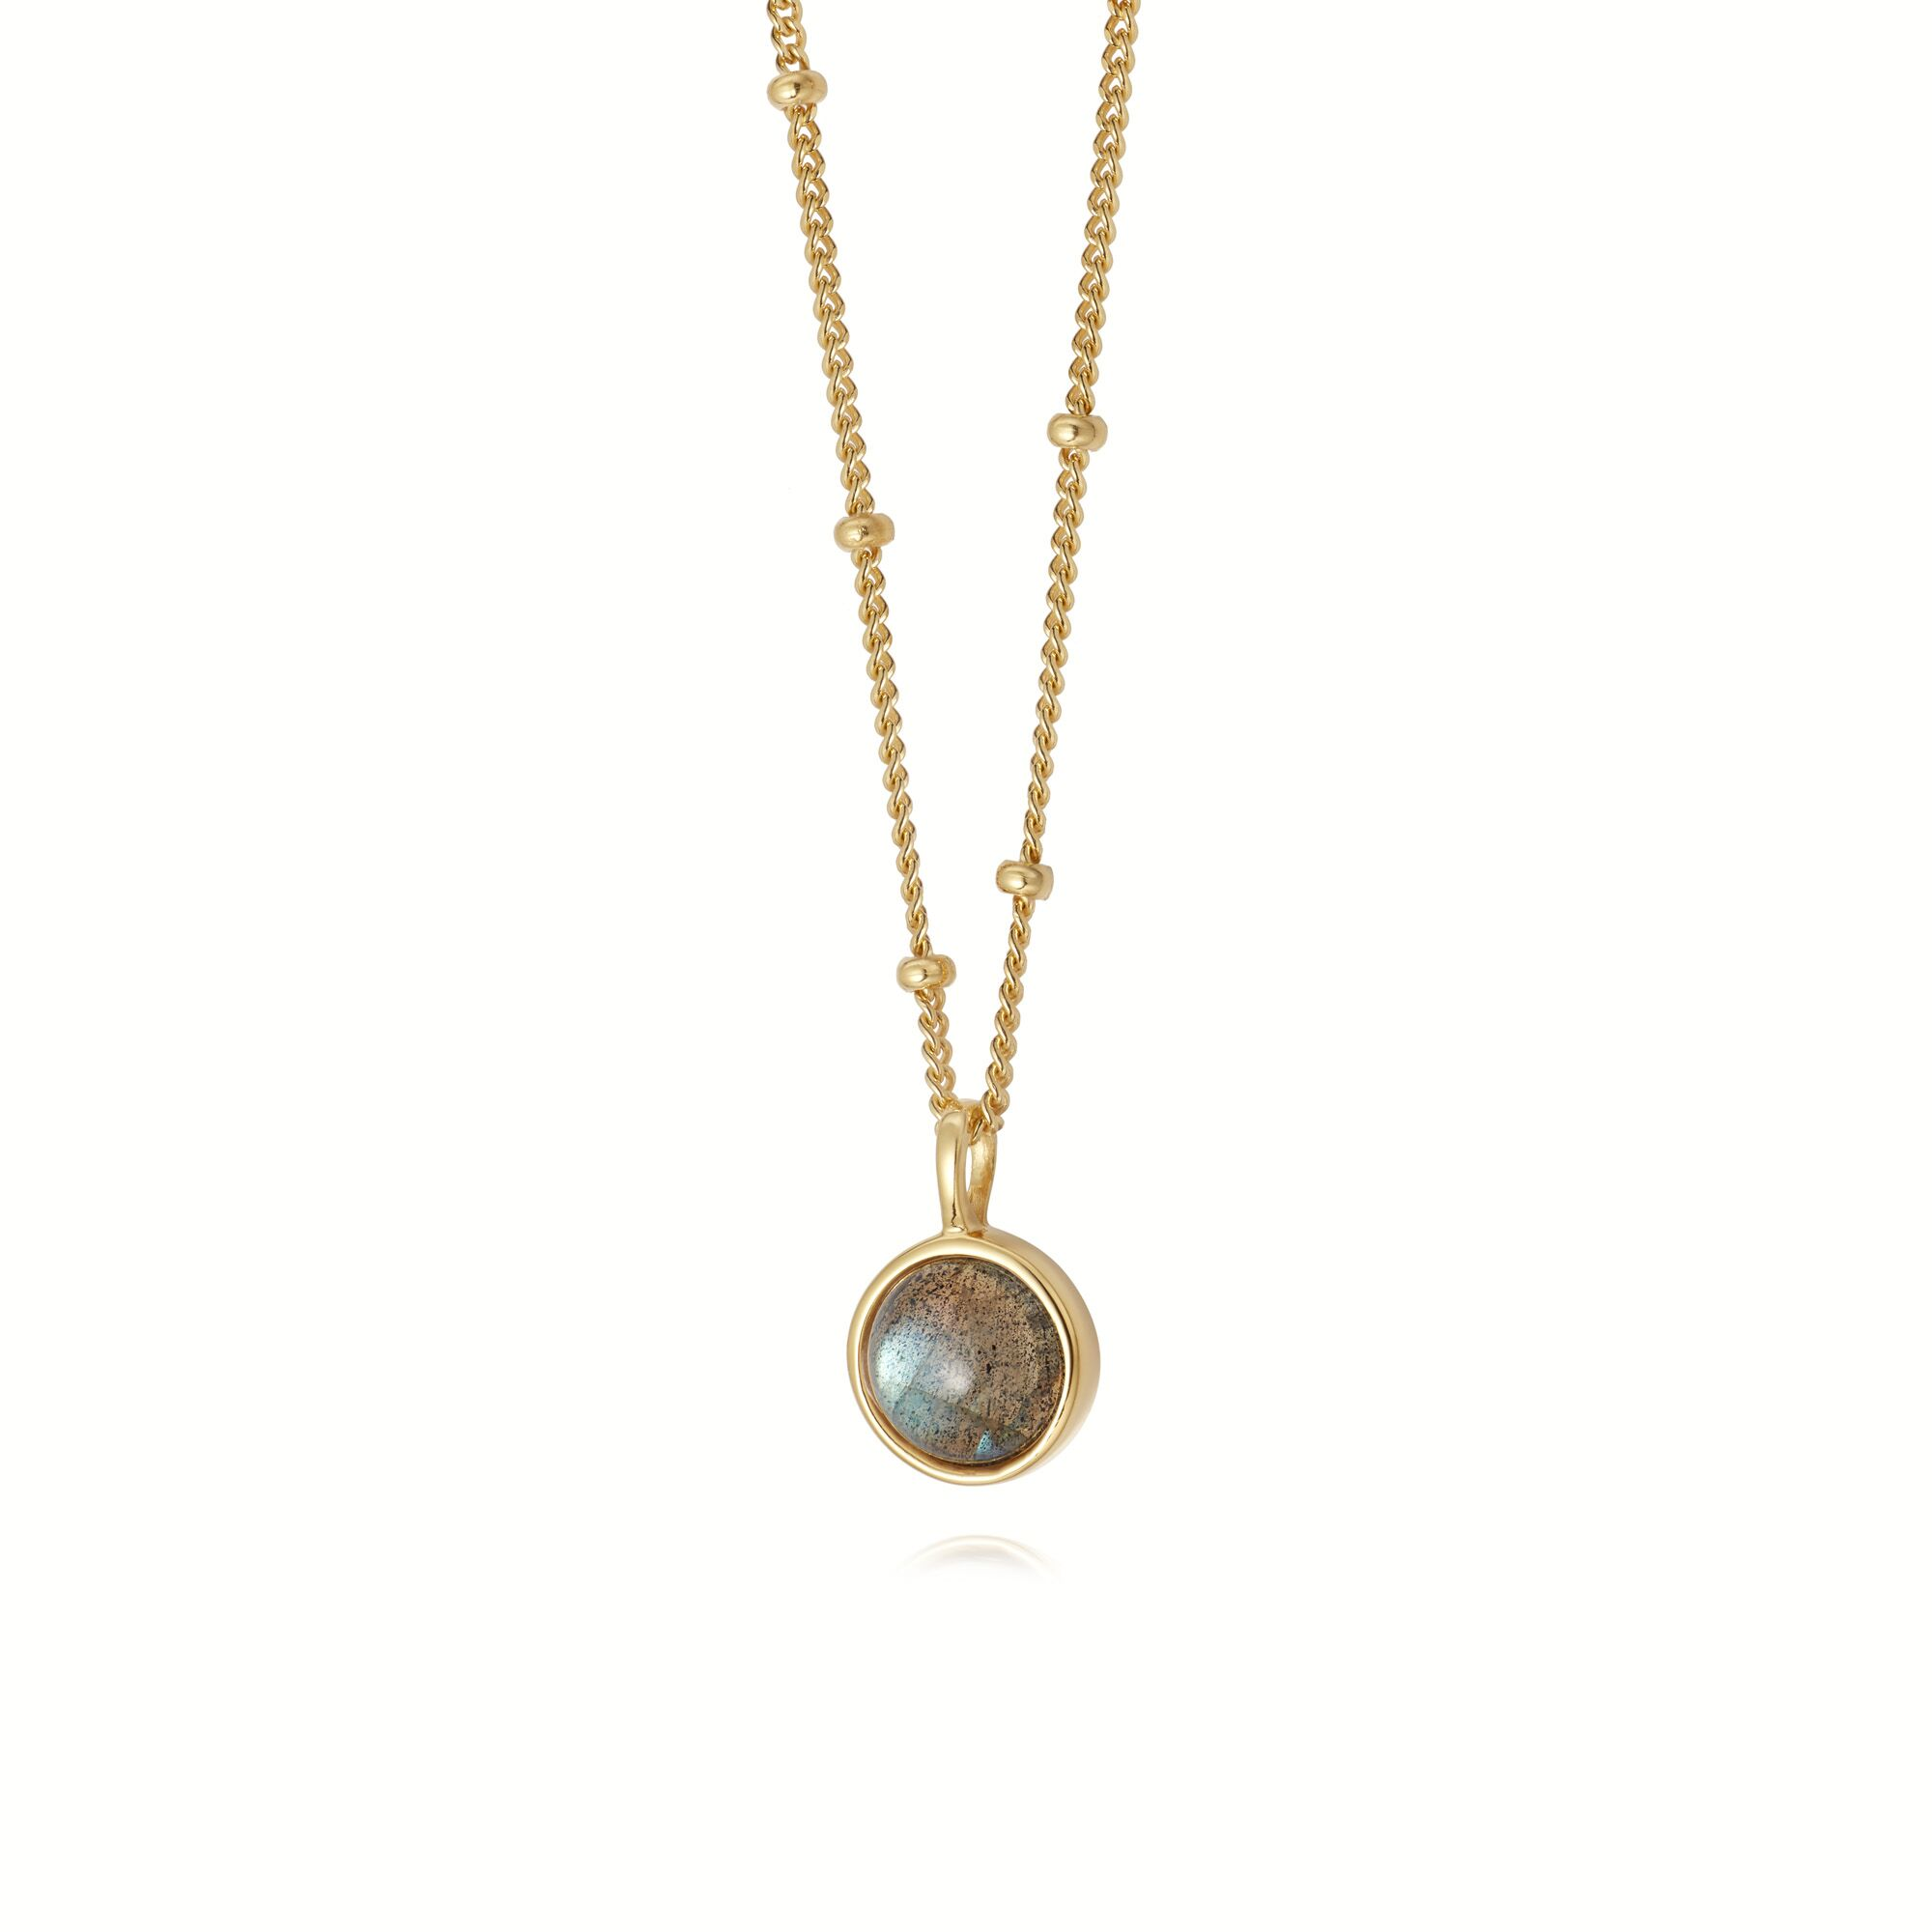 LABRODORITE HEALING NECKLACE GOLD